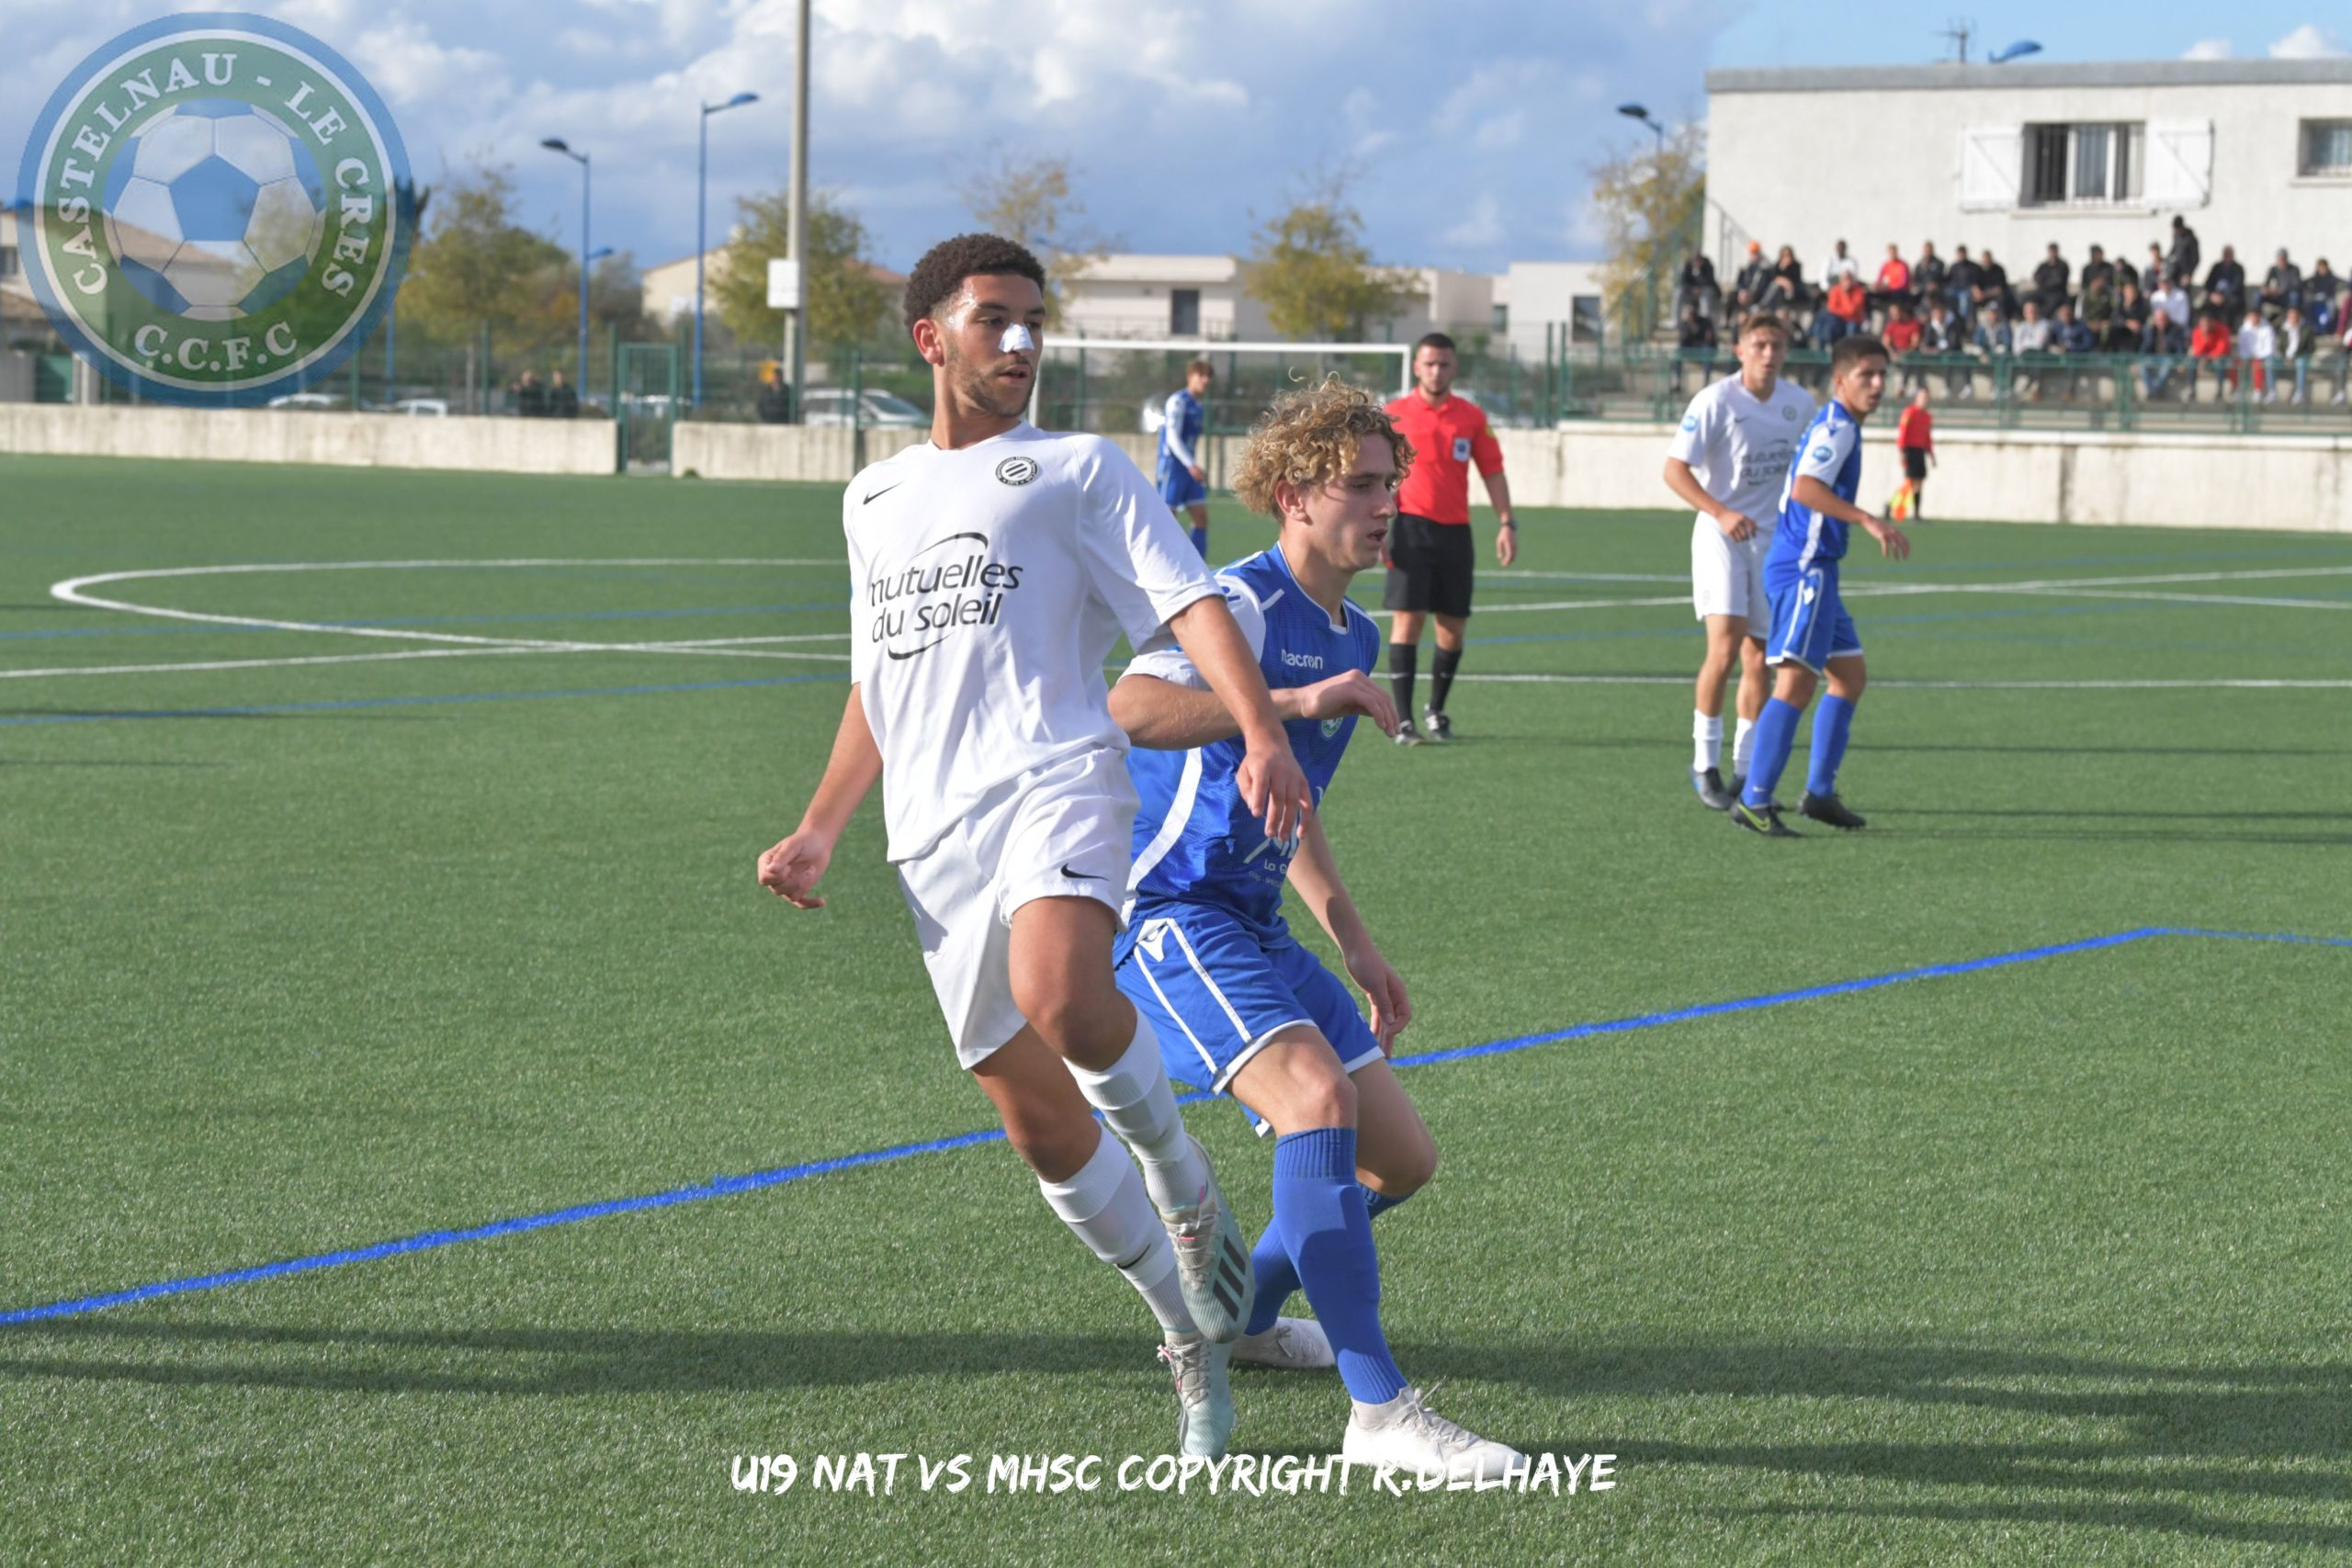 Les U19 s'inclinent face au Leader